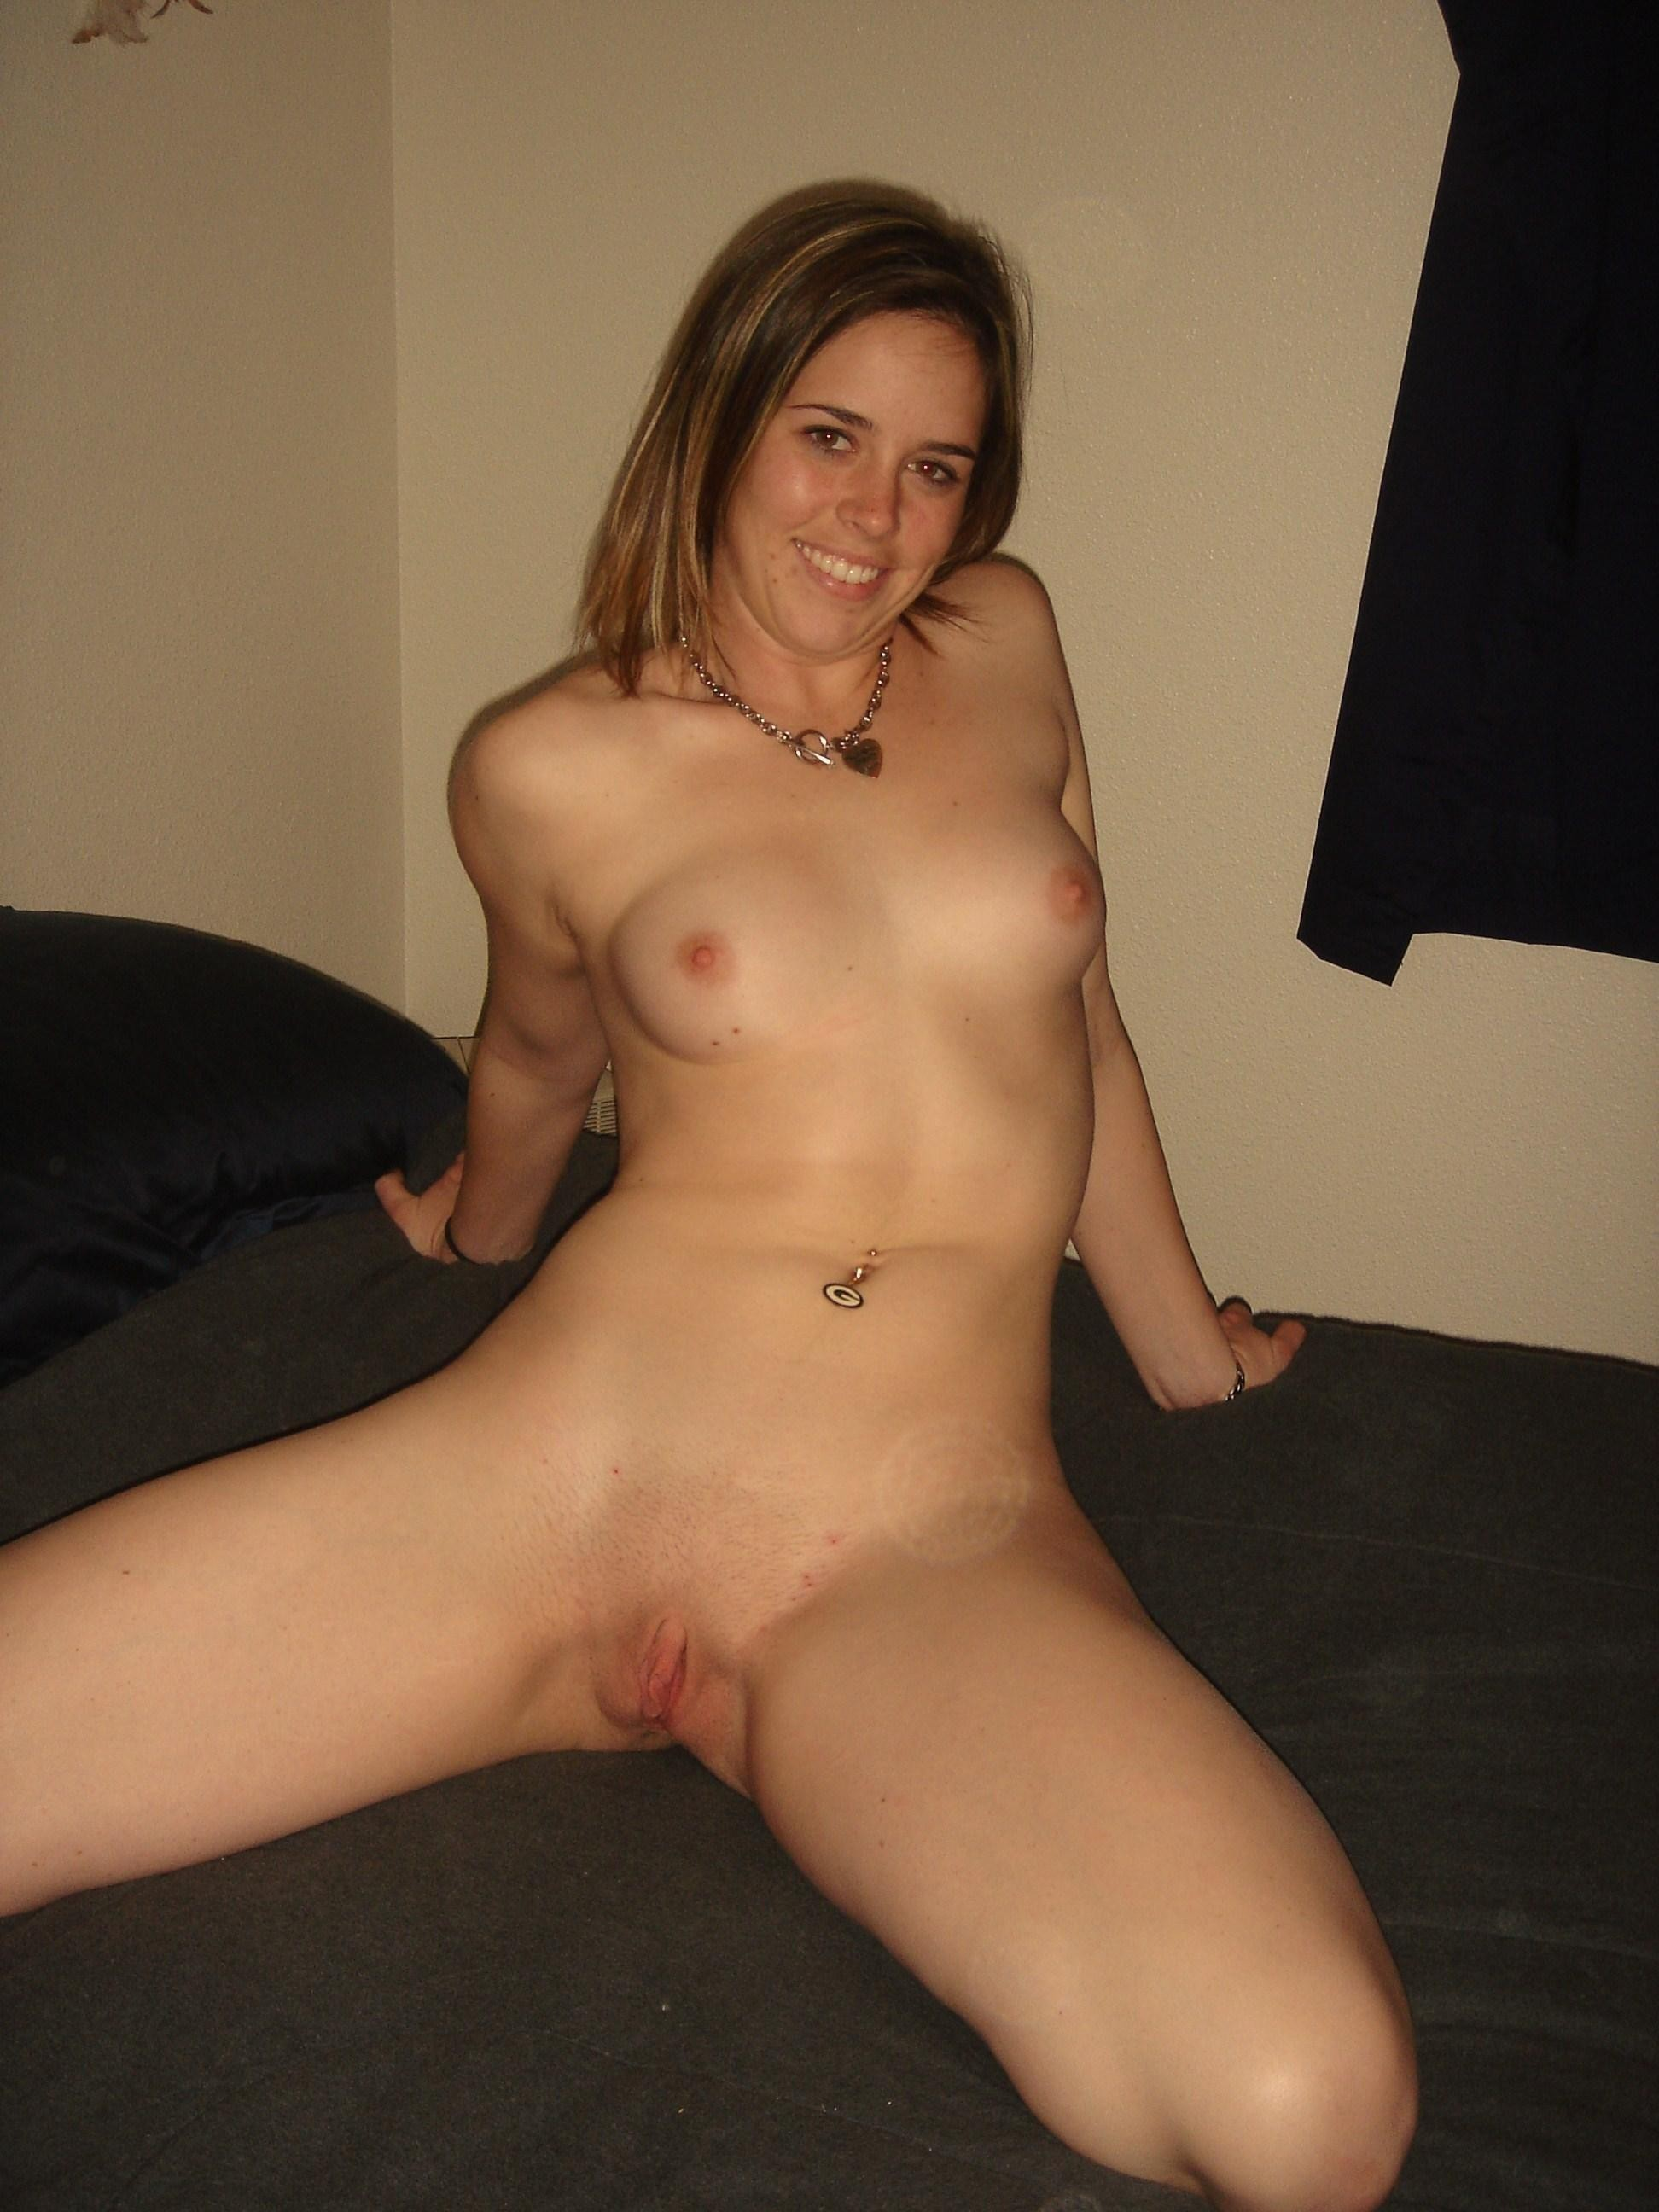 Naked Pictures Of Amateur Girls